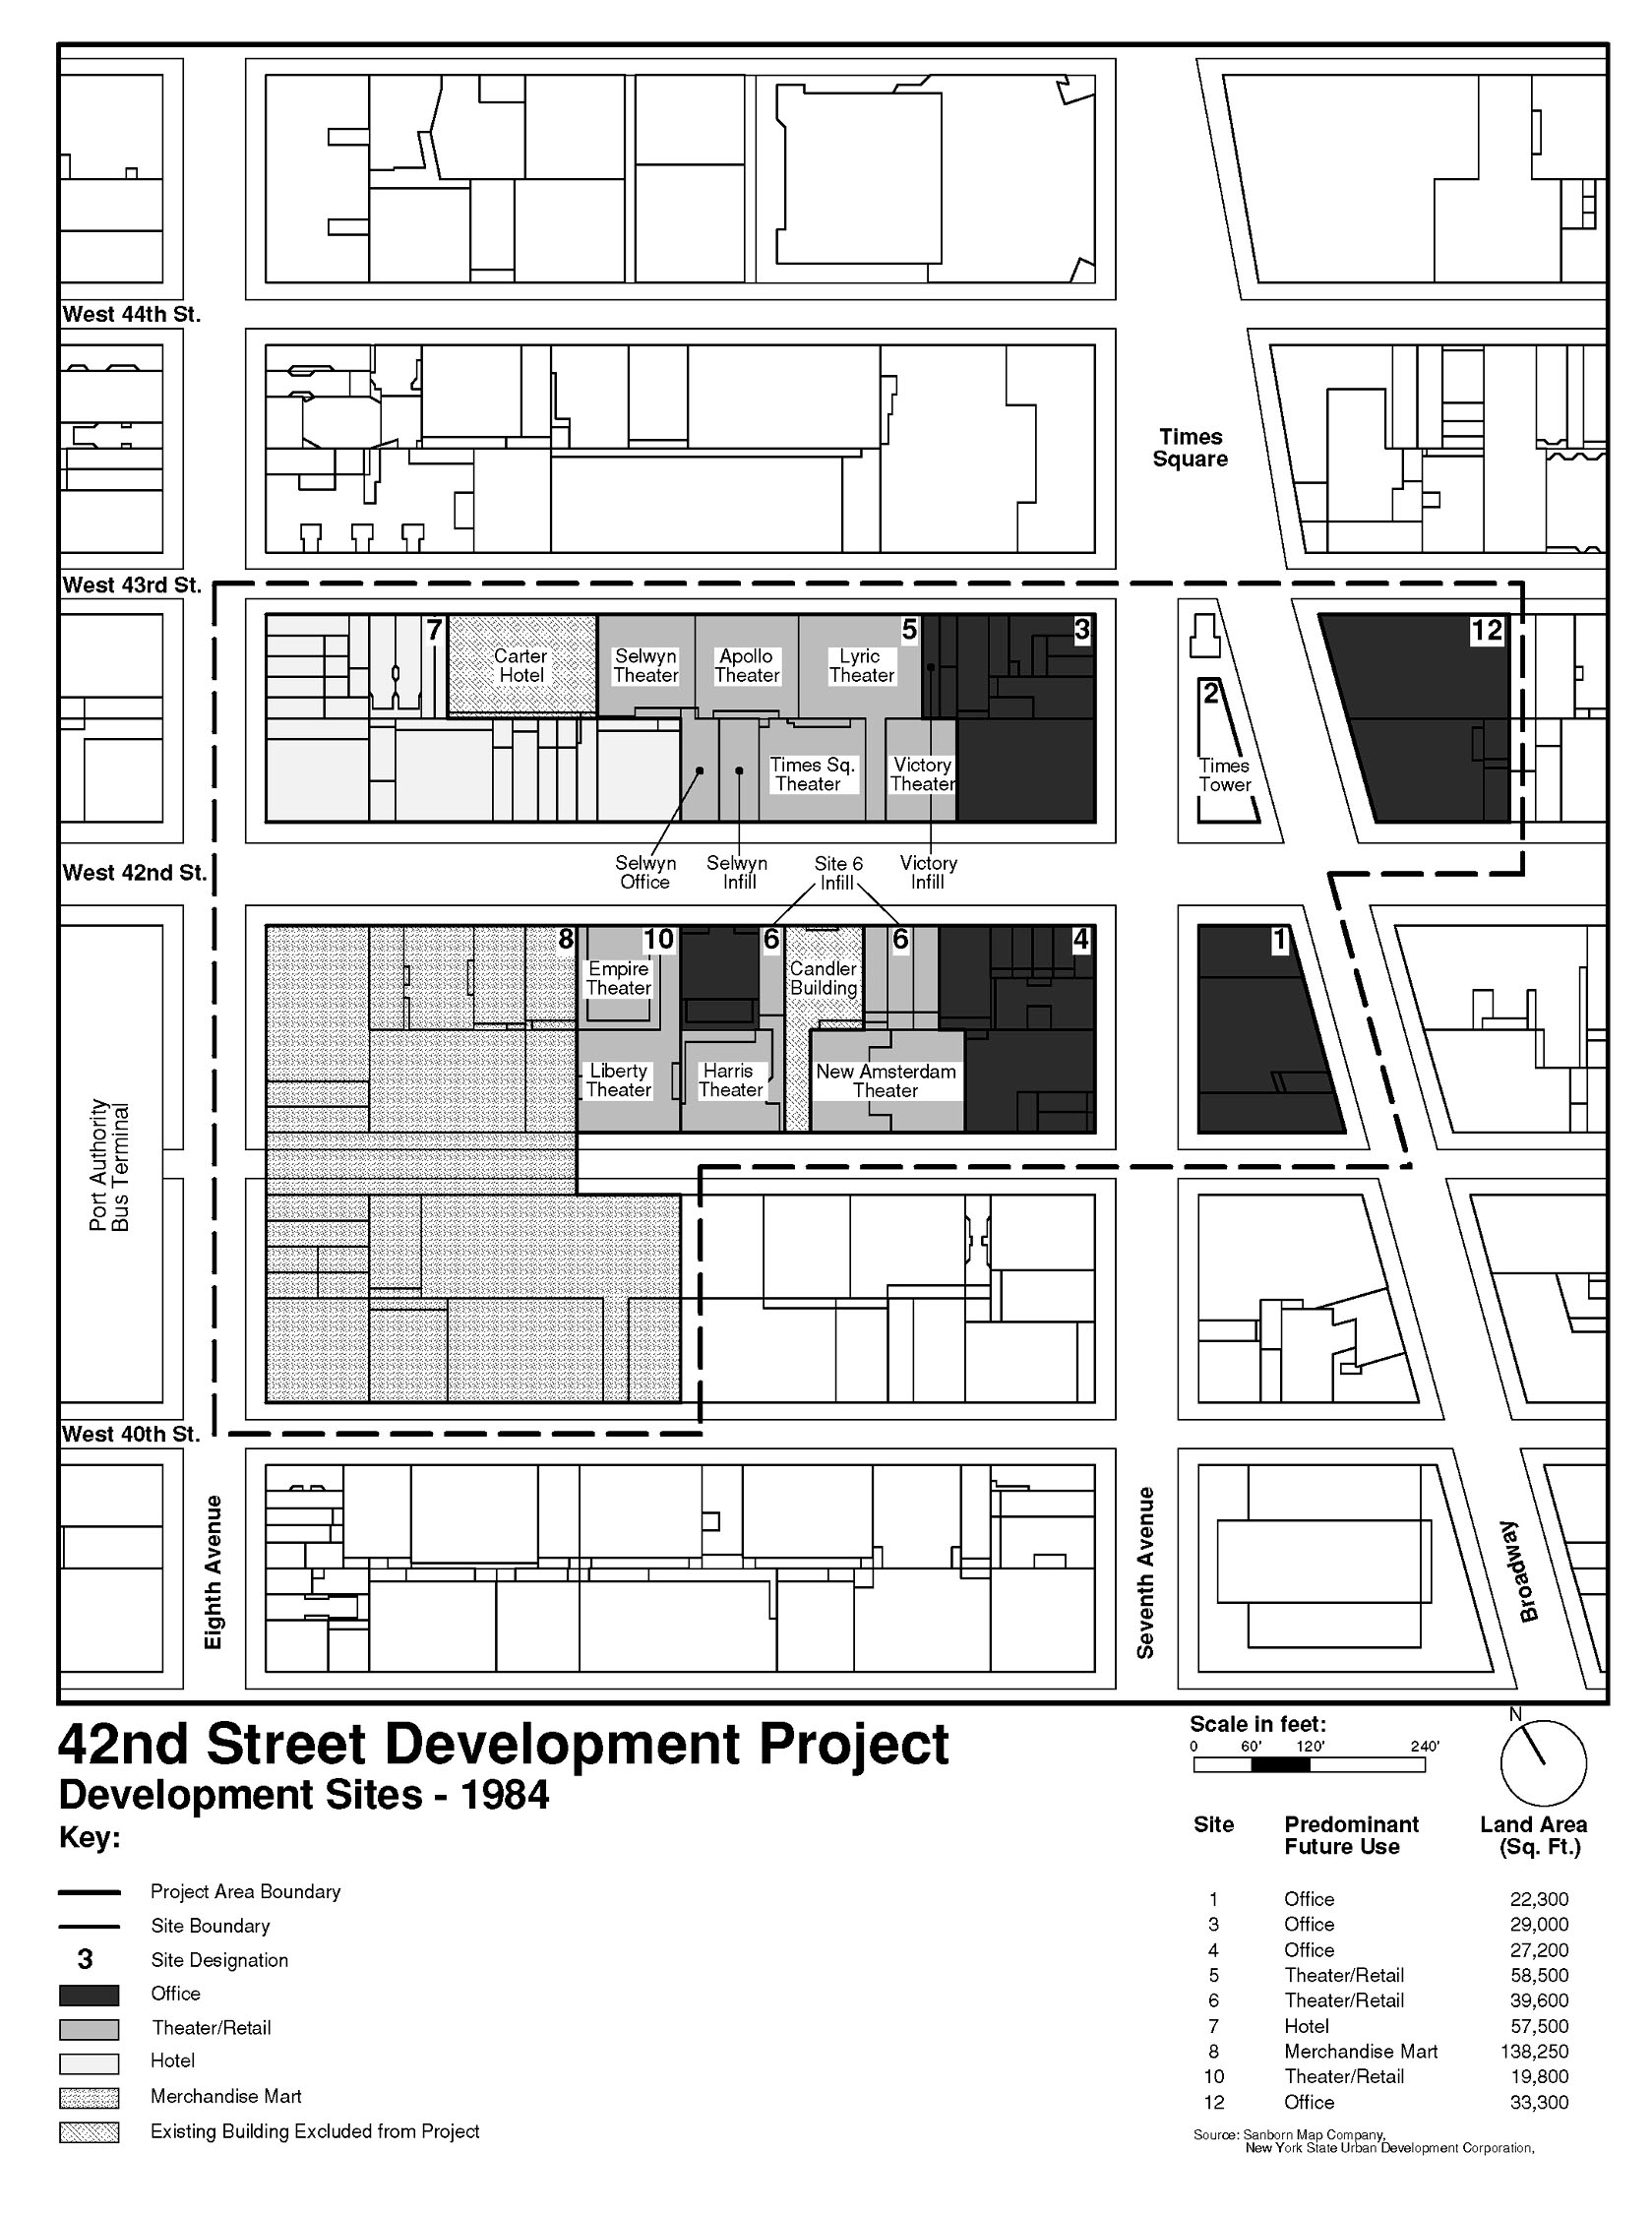 Map of the development sites for the 42nd Street Development Project.